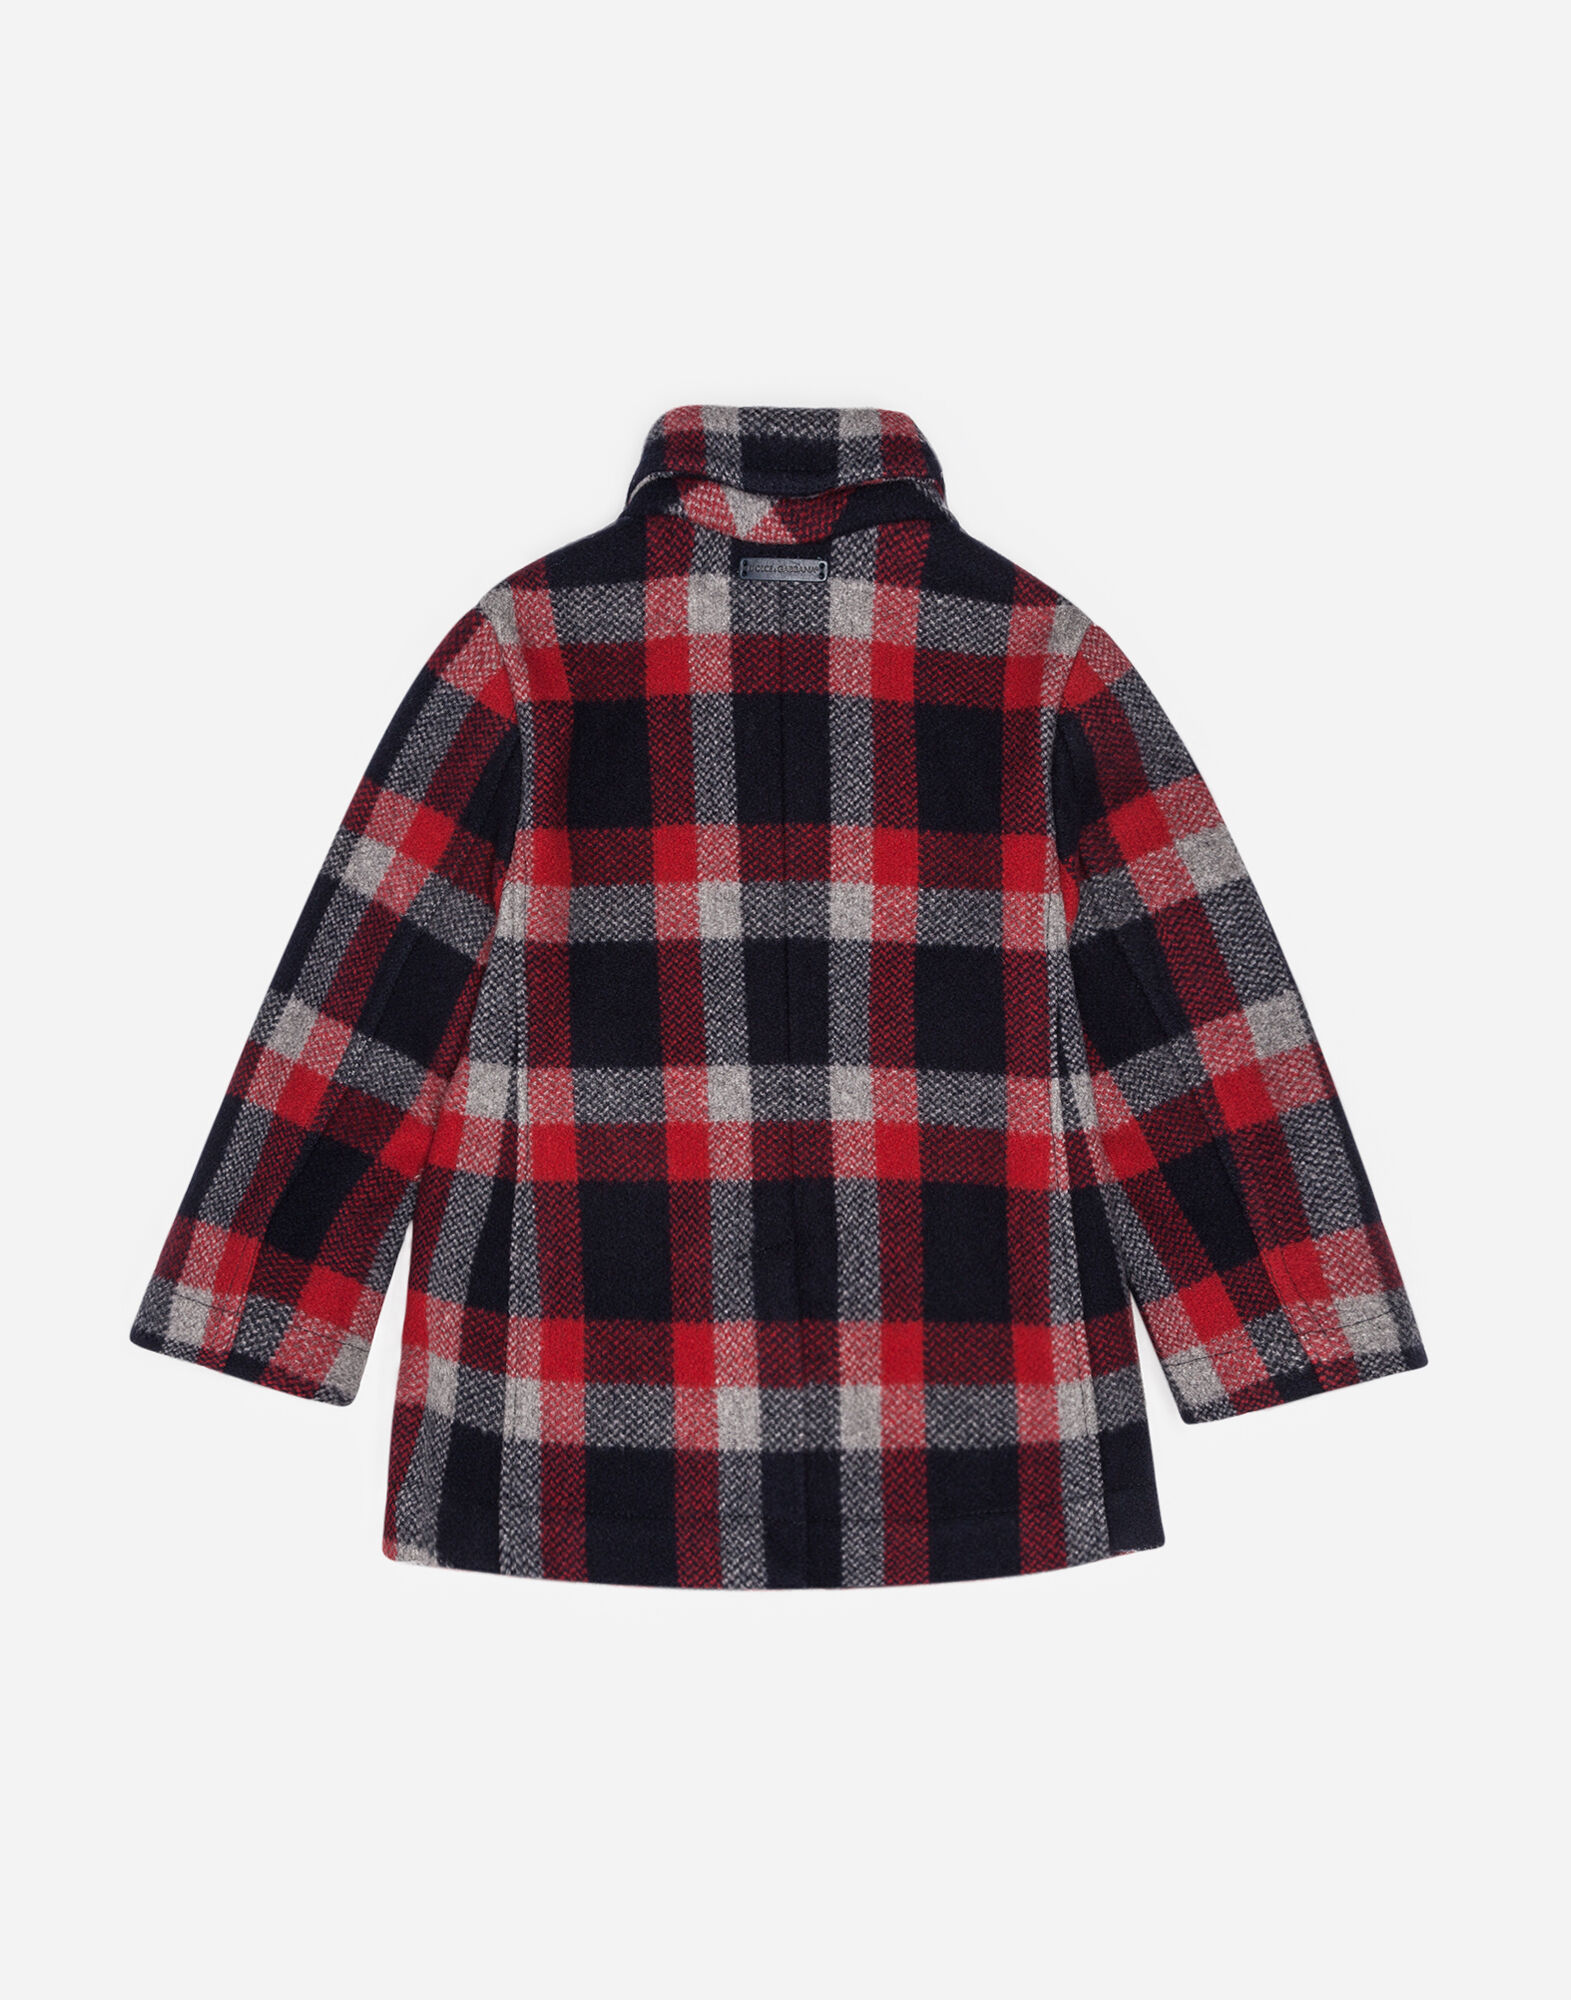 DOUBLE-BREASTED CHECK WOOL PEACOAT